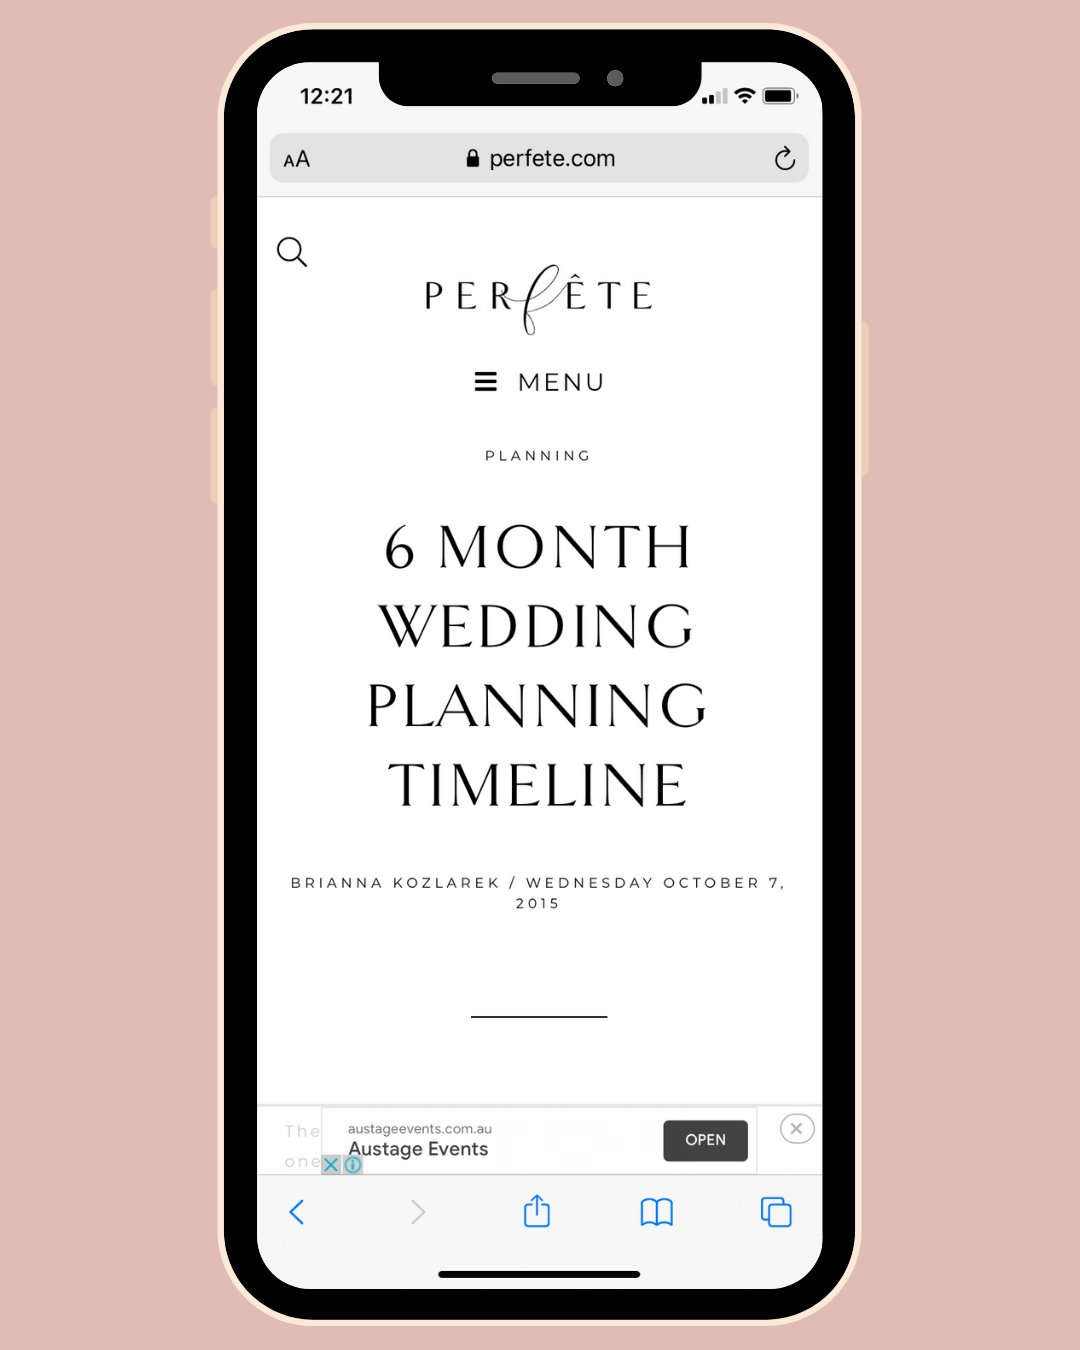 6 month wedding planning timeline